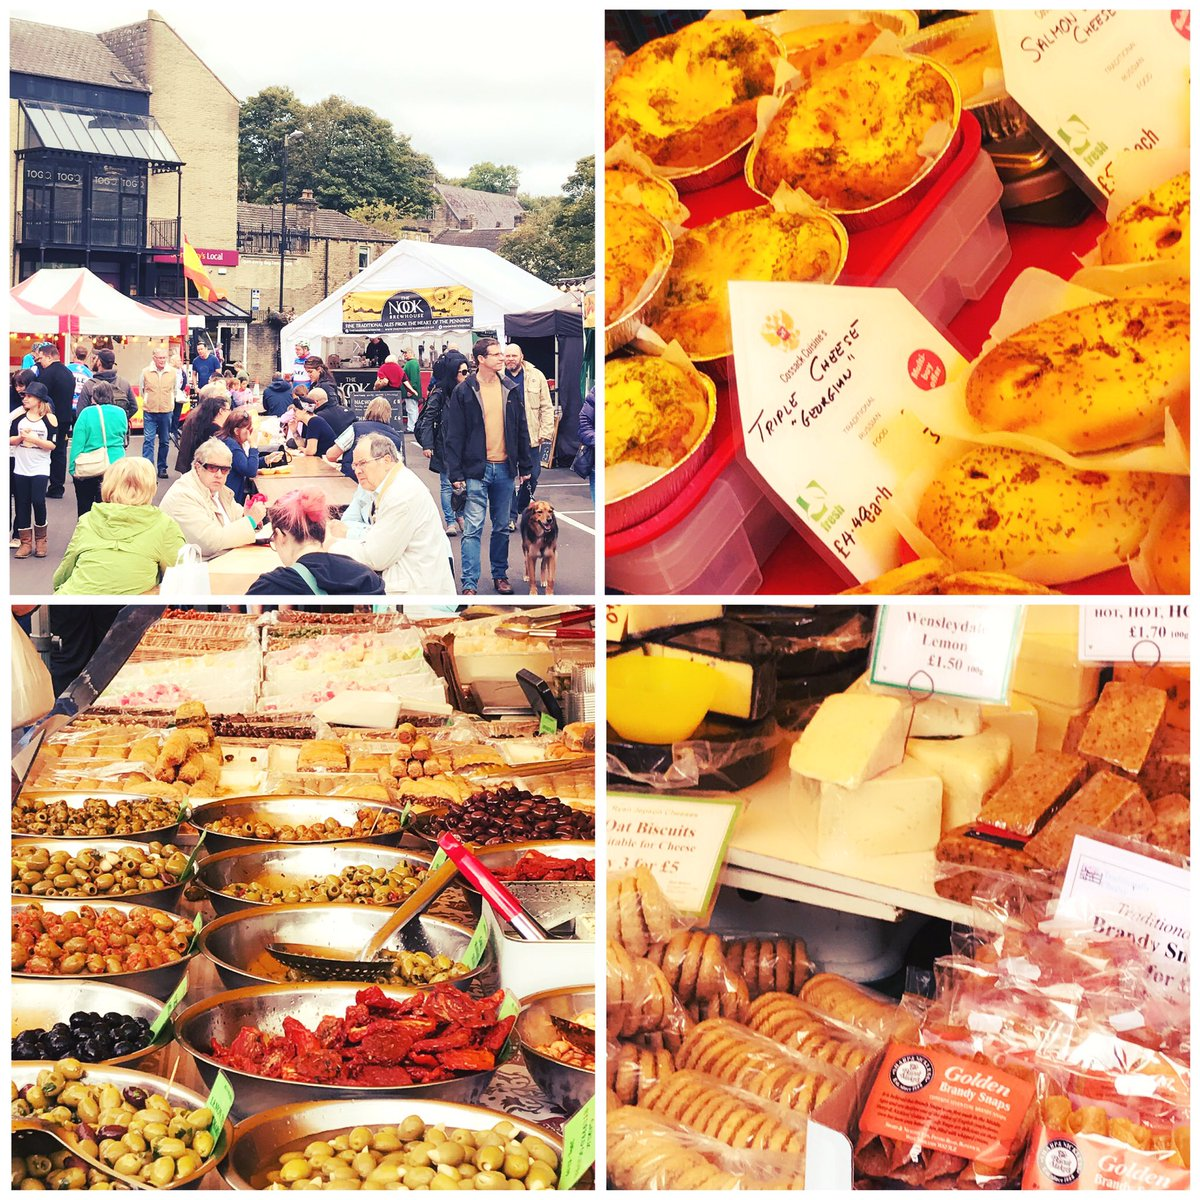 Great work from the @HolmfirthFood team again! Lots of tasty stalls &amp; great atmosphere #holmfirth #huddersfield #food #drink #yorkshire <br>http://pic.twitter.com/wEVGWPSrq0